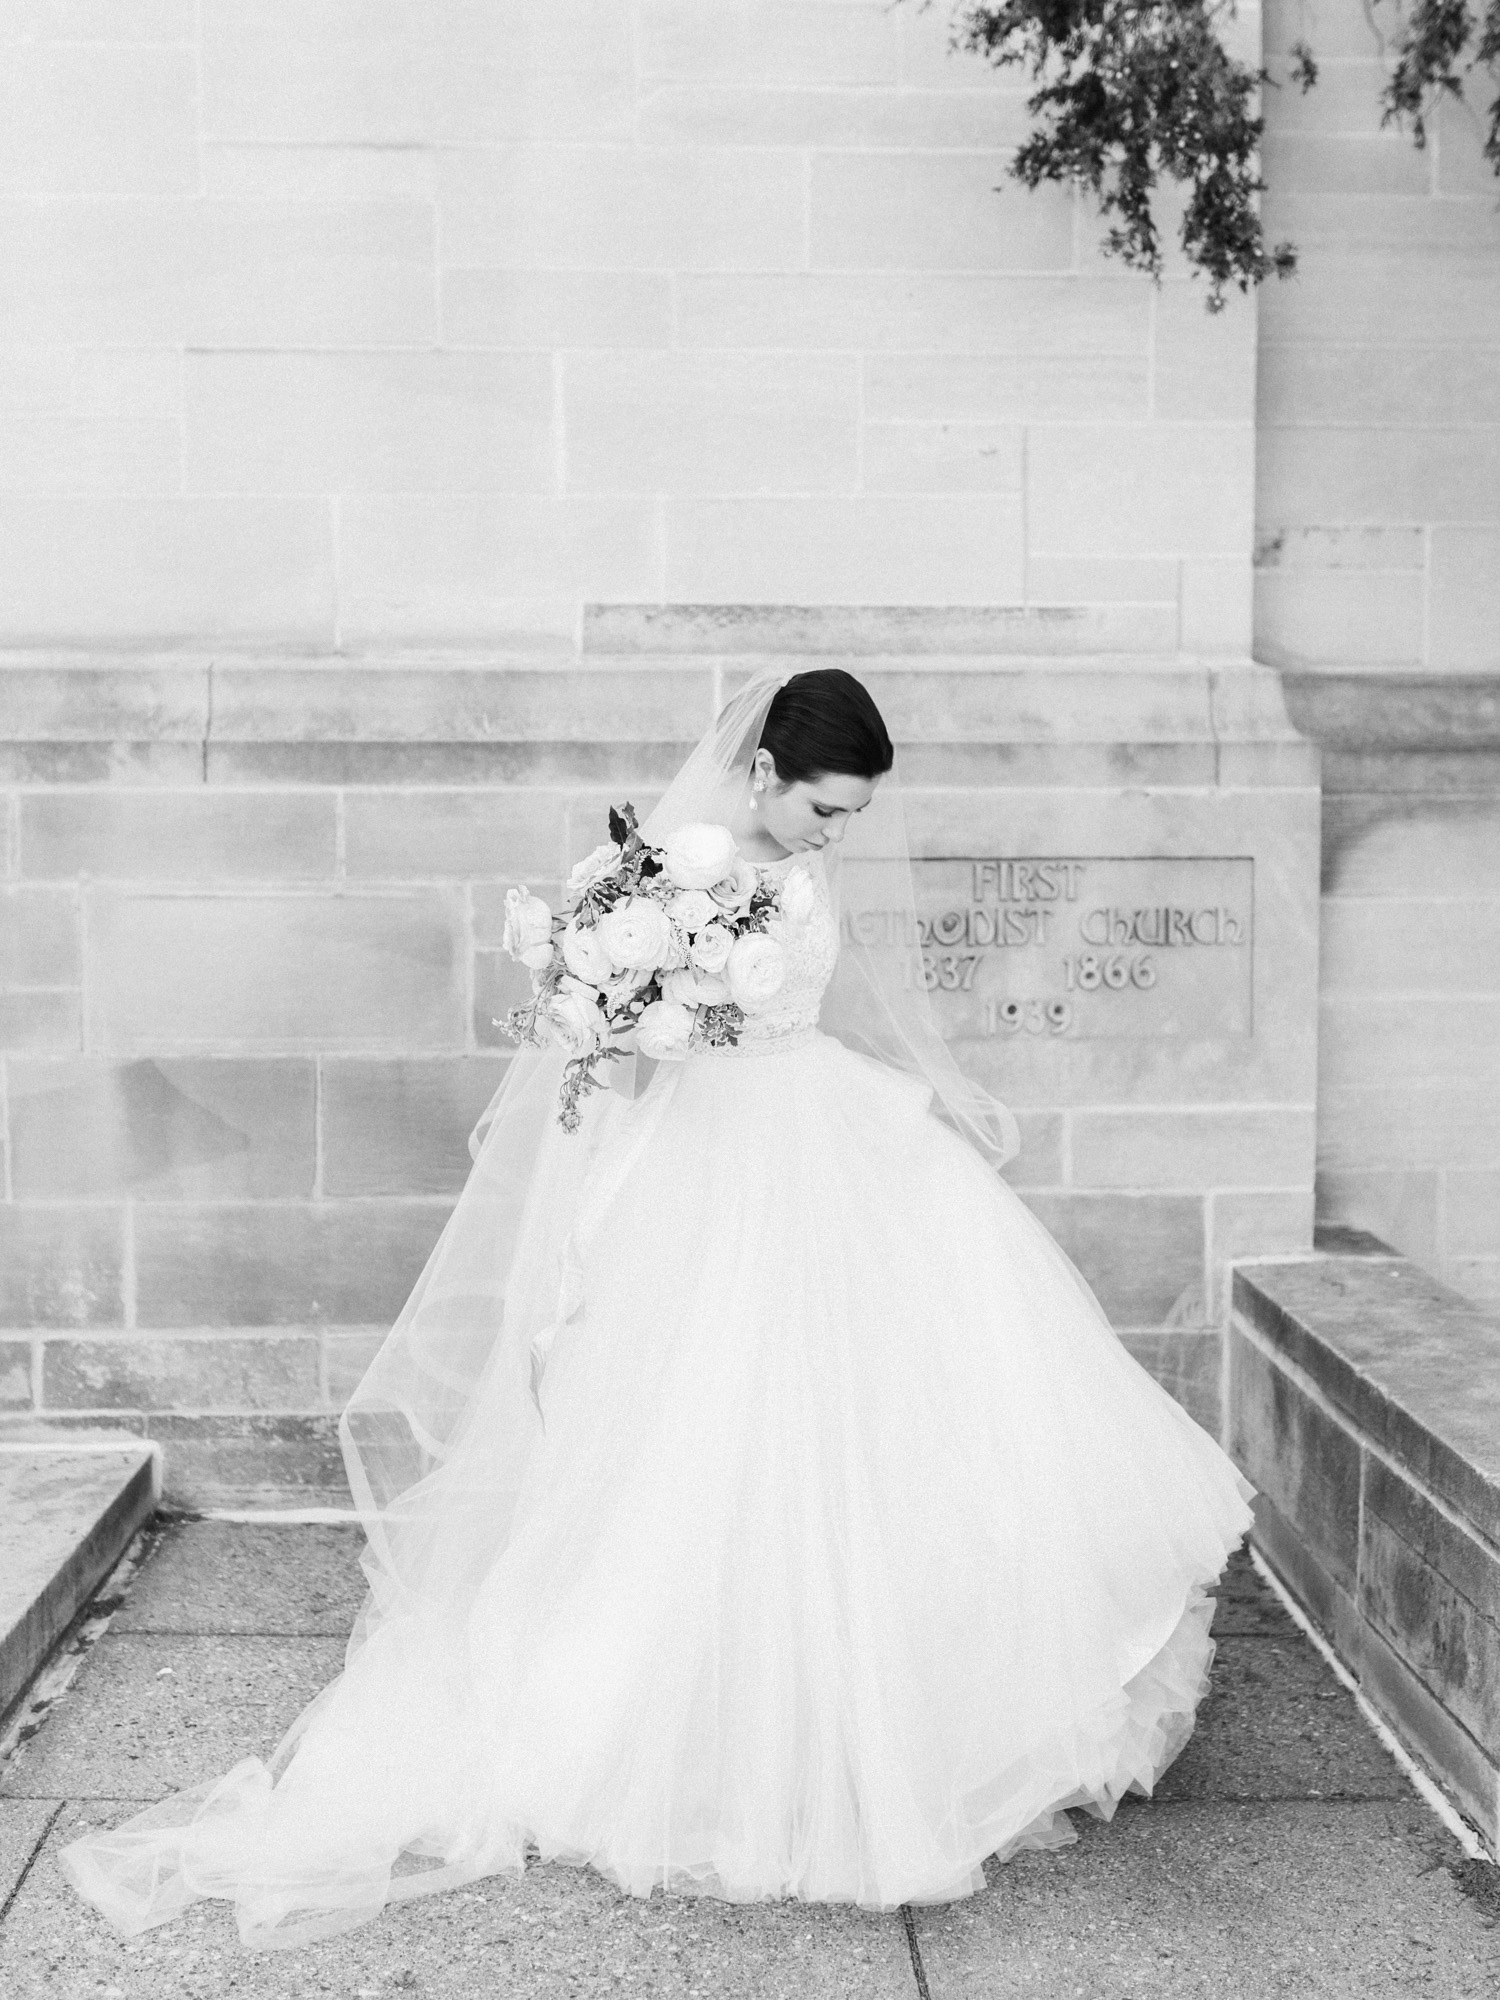 A bride outside her Ann Arbor wedding venue, captured by wedding photographer Christina Harrison